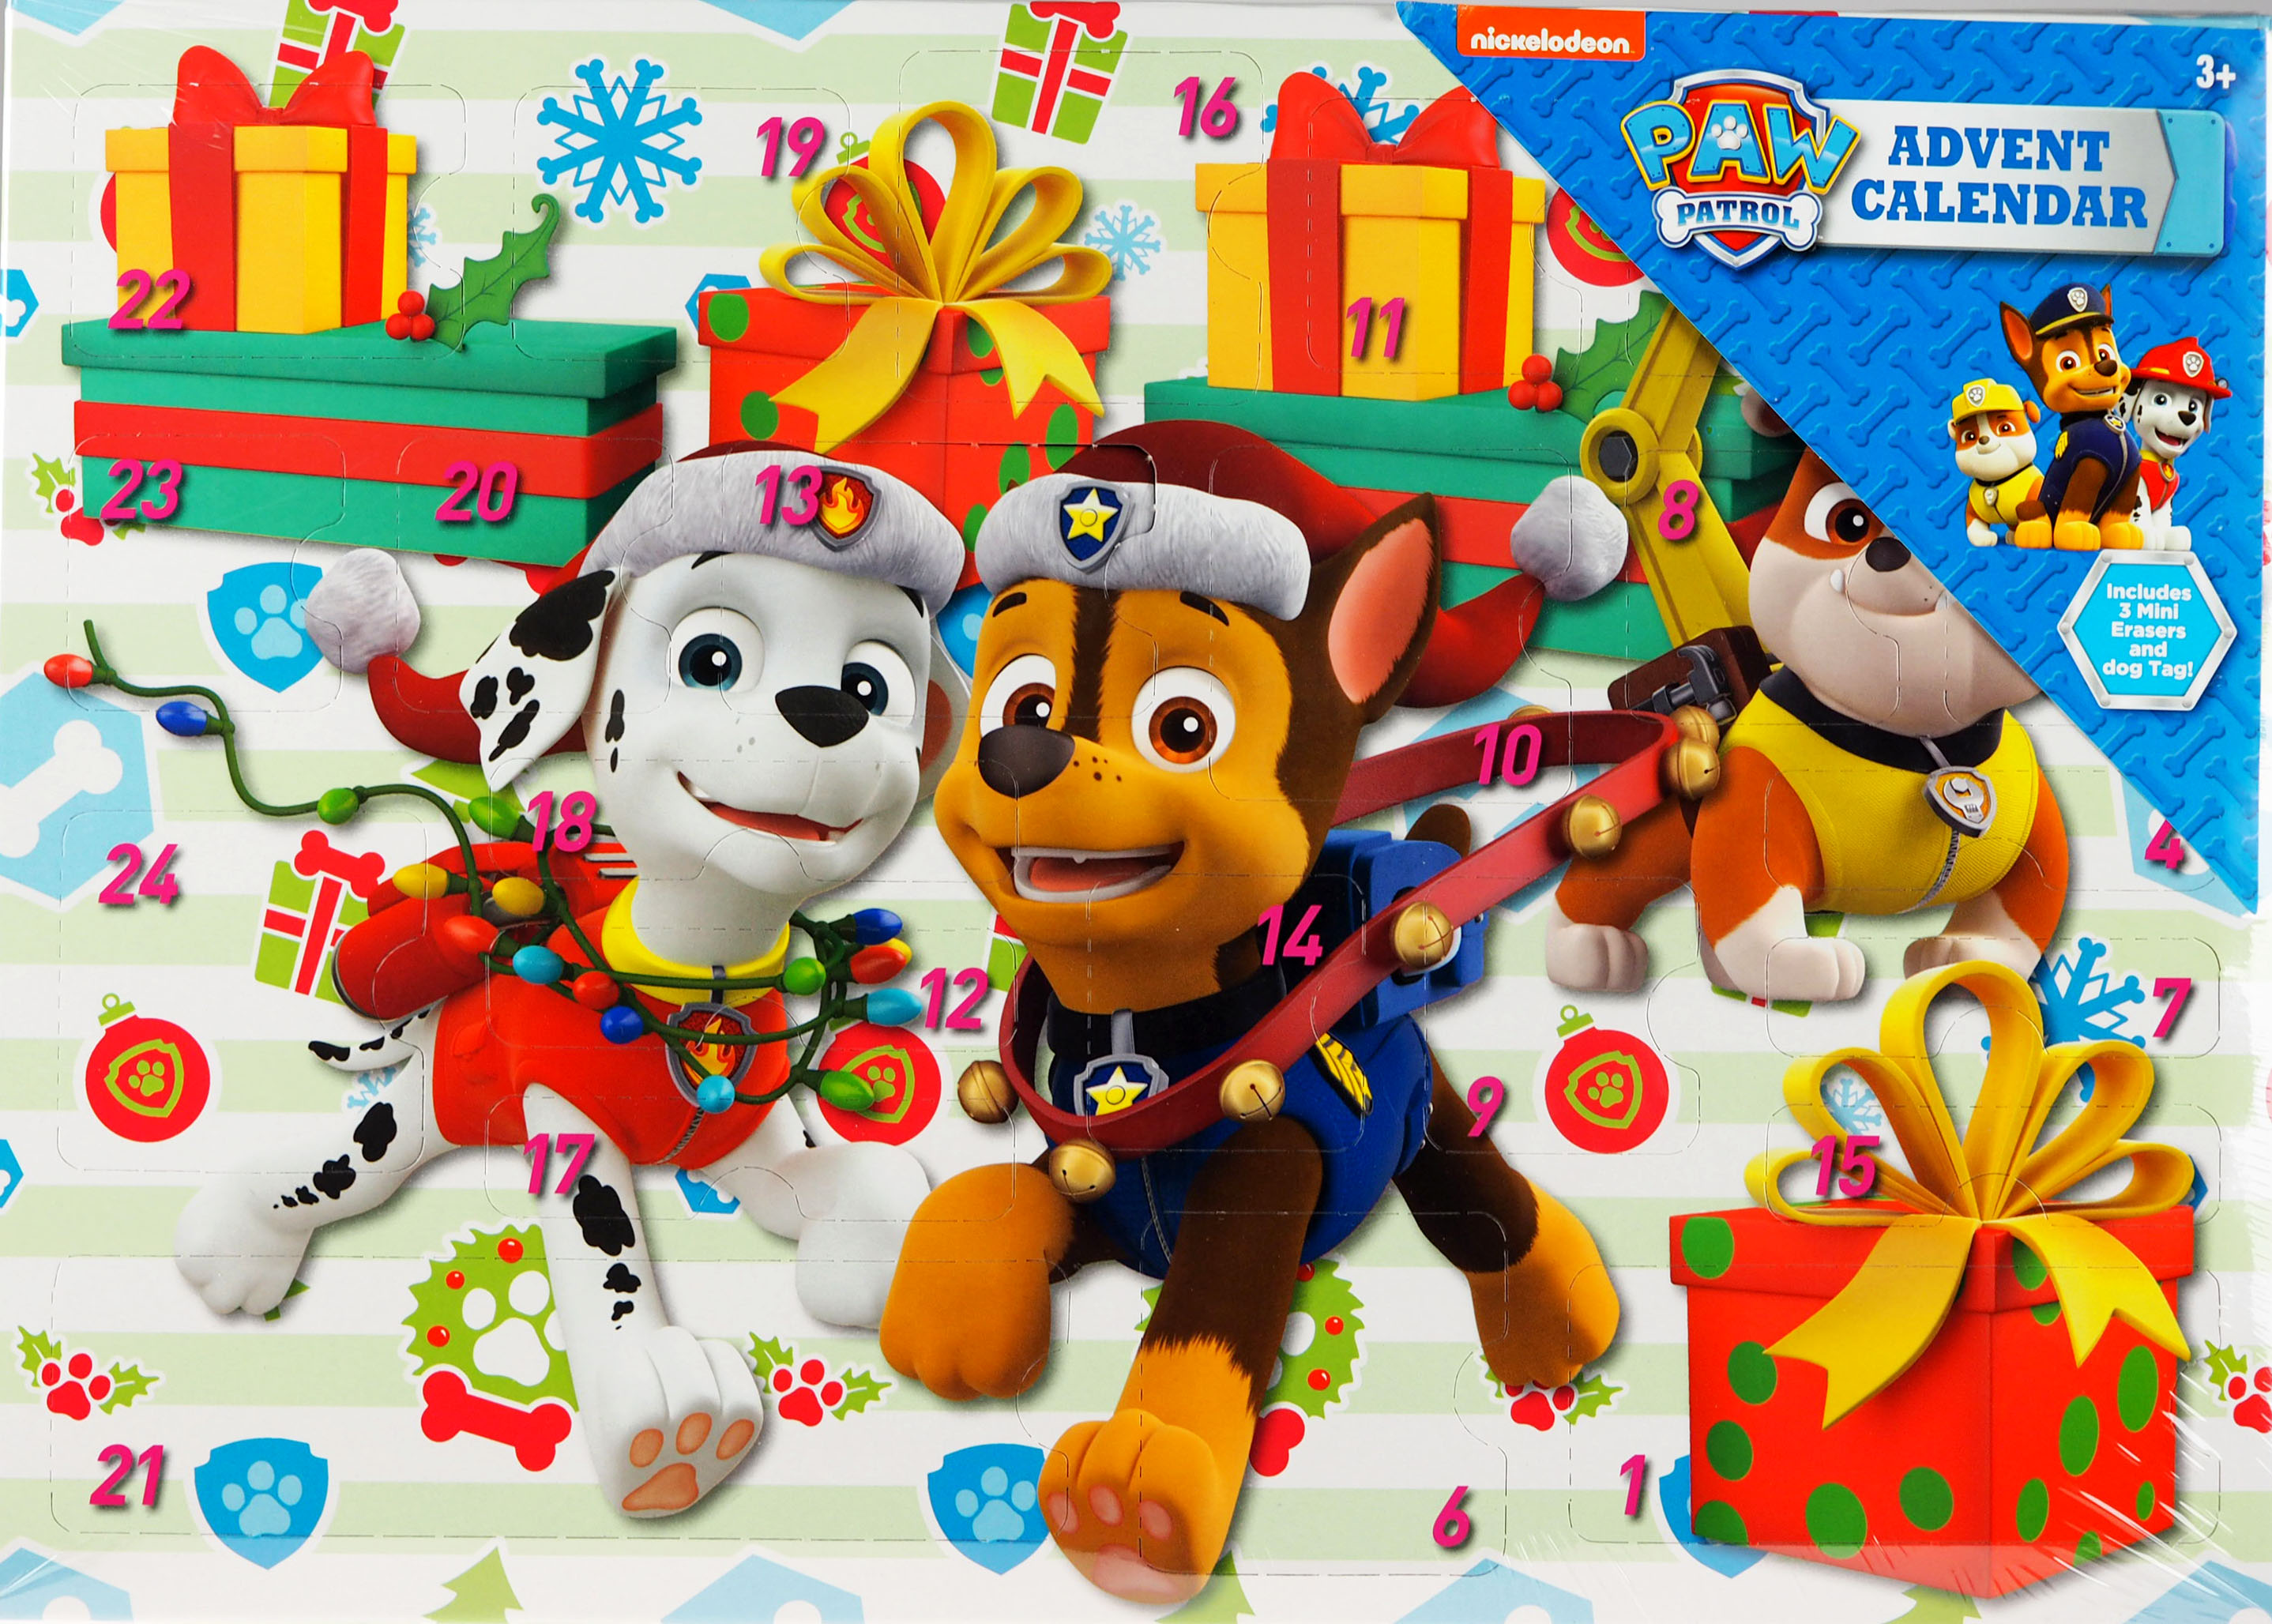 Details about Paw Patrol Christmas Toy & Stationery Treats Gift Advent  Calendar.